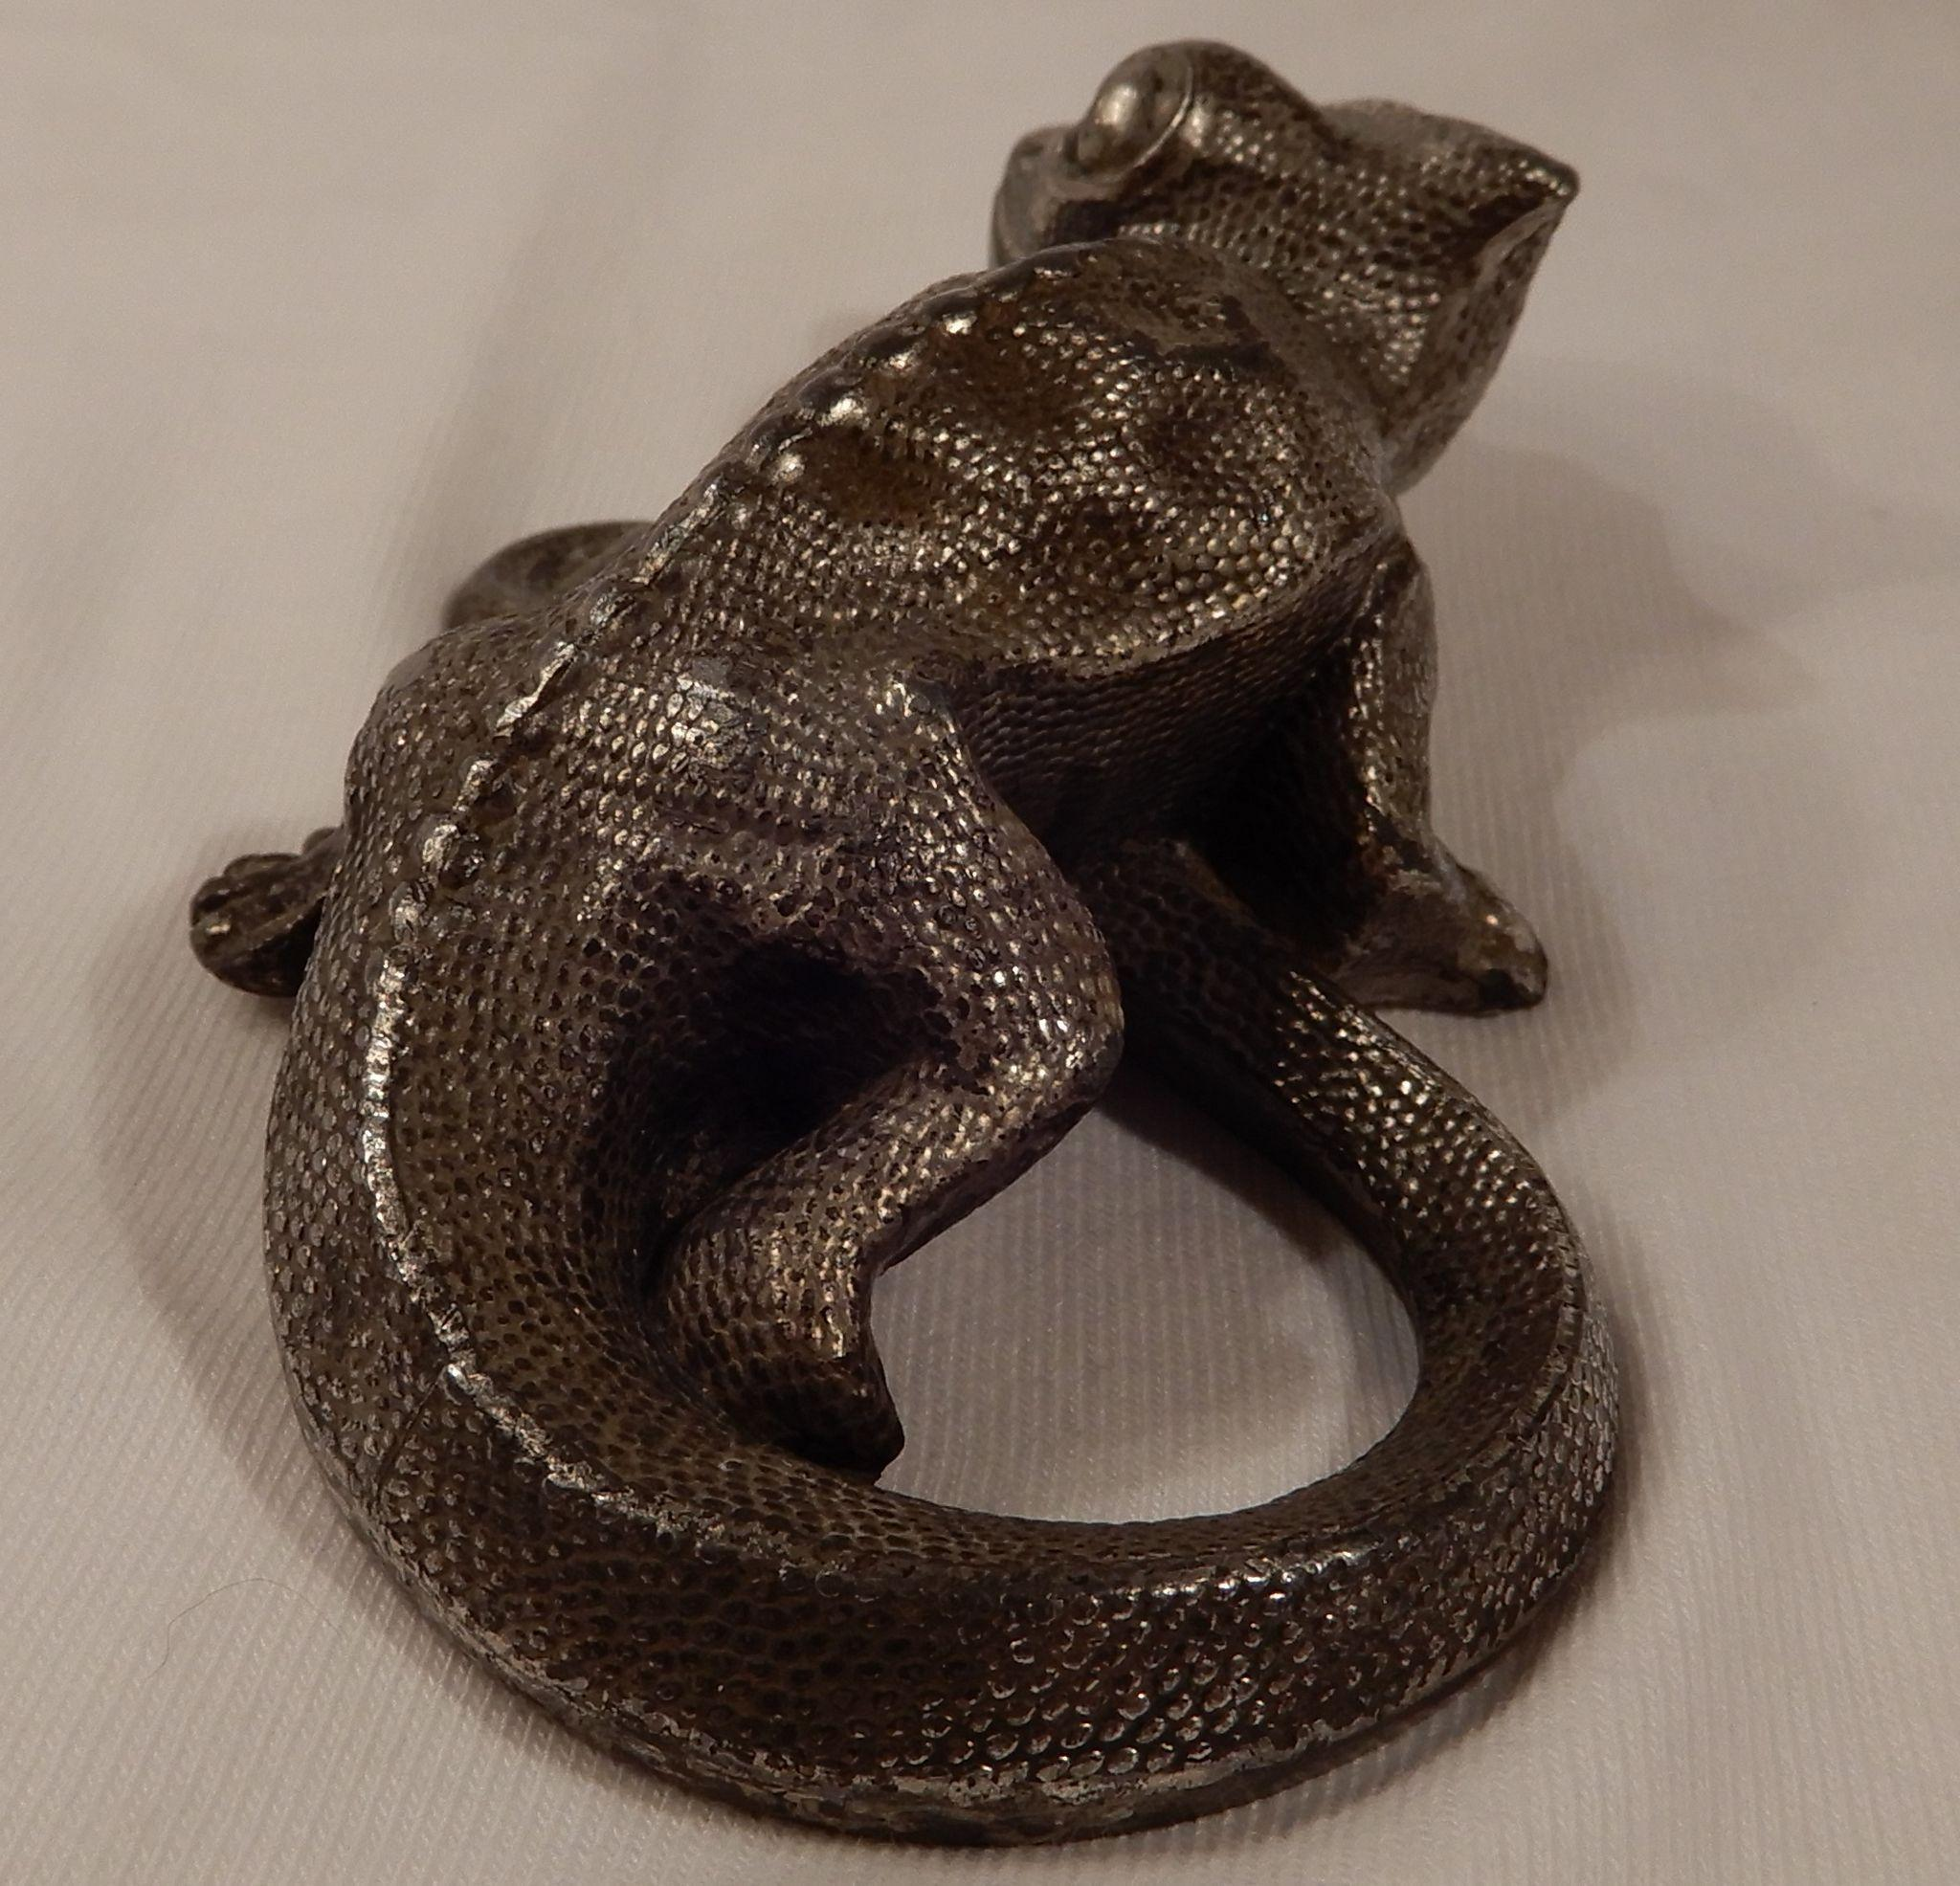 lizard essay Essay reptiles are vertebrate, or backboned animals constituting the class reptilia and are characterized by a combination of features, none of which alone.